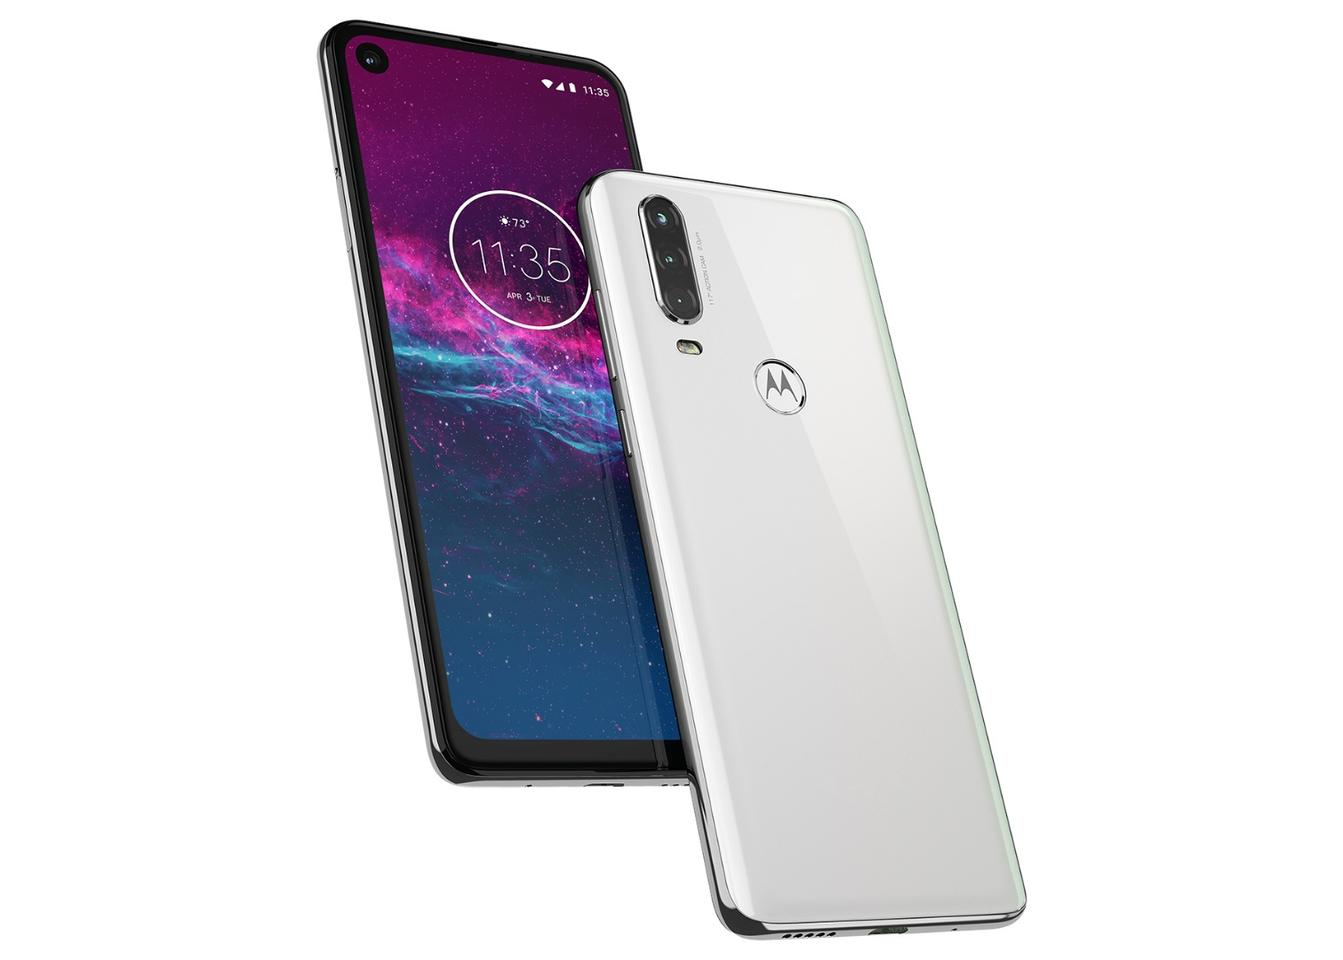 The Motorola One Action comes with a 6.3-inch, HDscreen